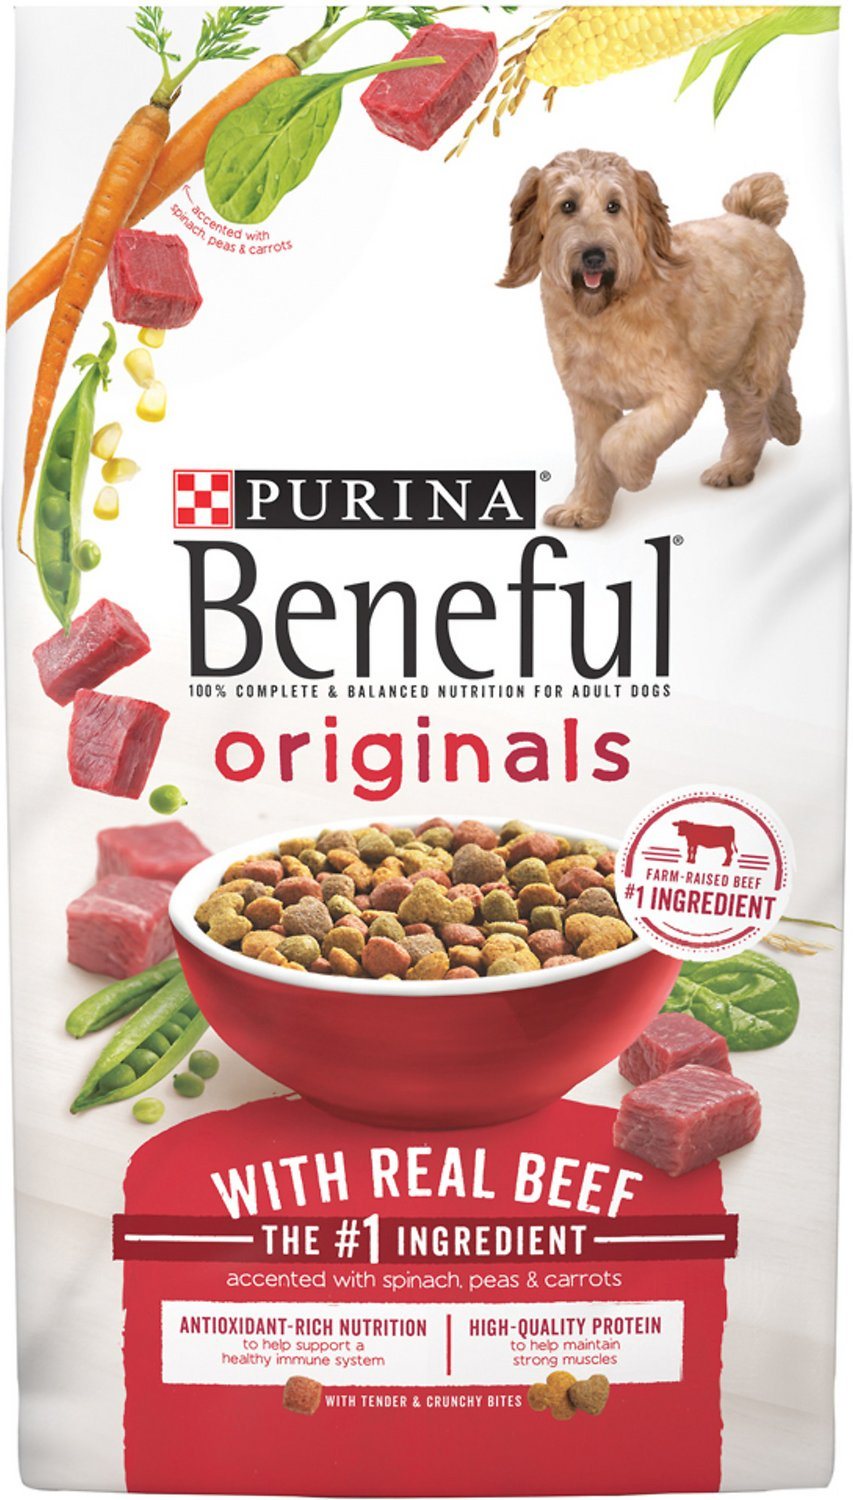 Purina Beneful Originals with Real Beef Dry Dog Food, 28-lb